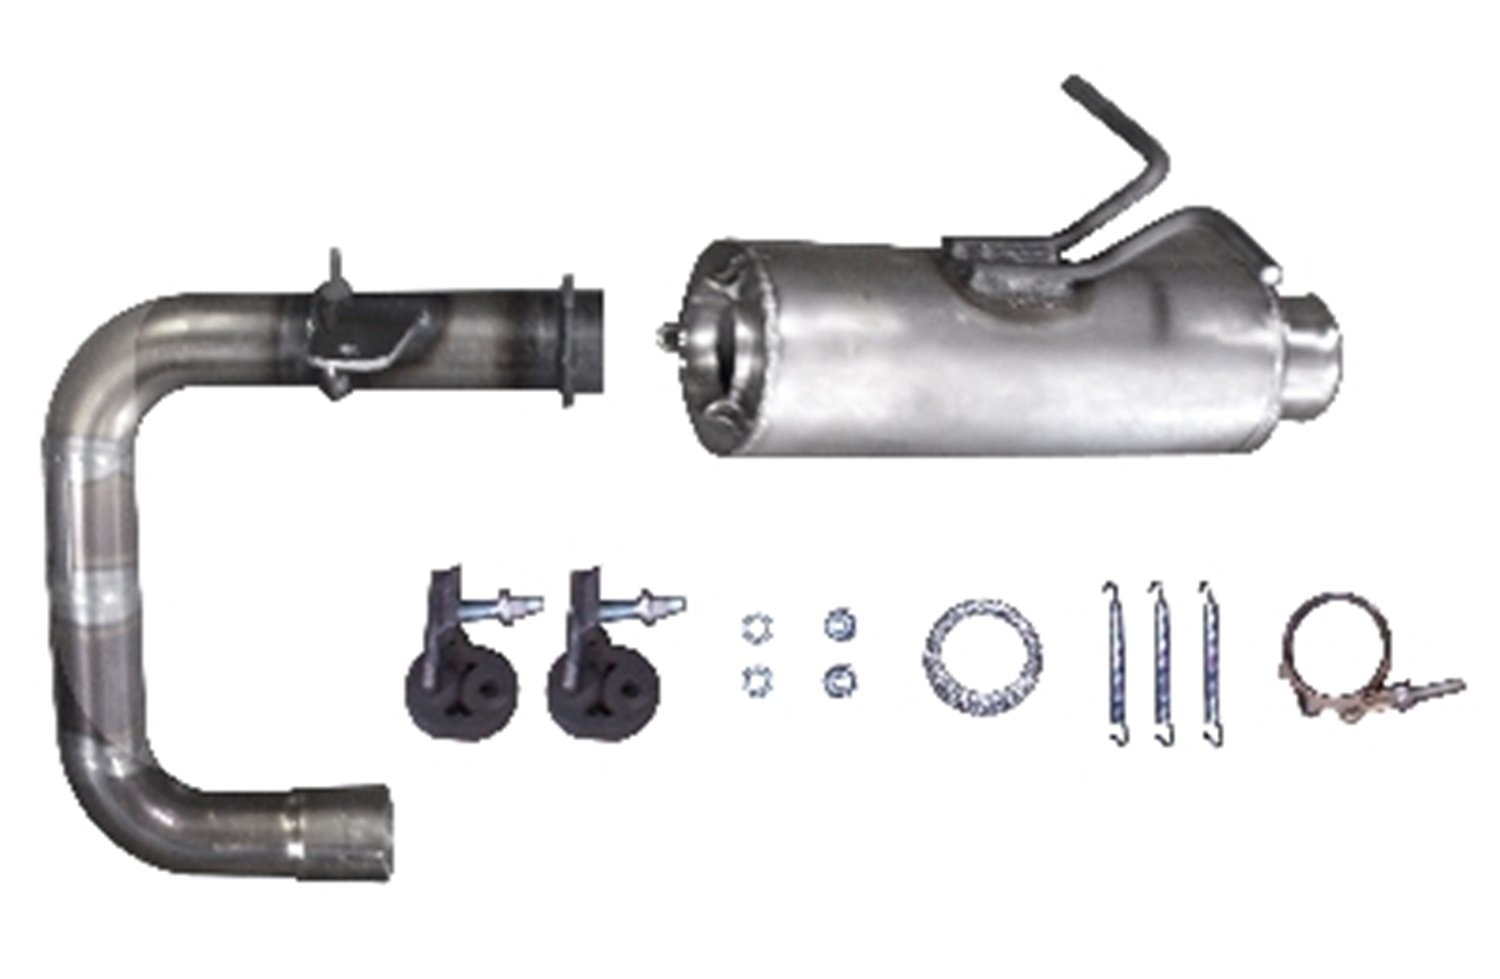 Gibson Performance Exhaust 96008 Stainless Steel Slip-On Performance Muffler for Yamaha cultural contingencies on performance